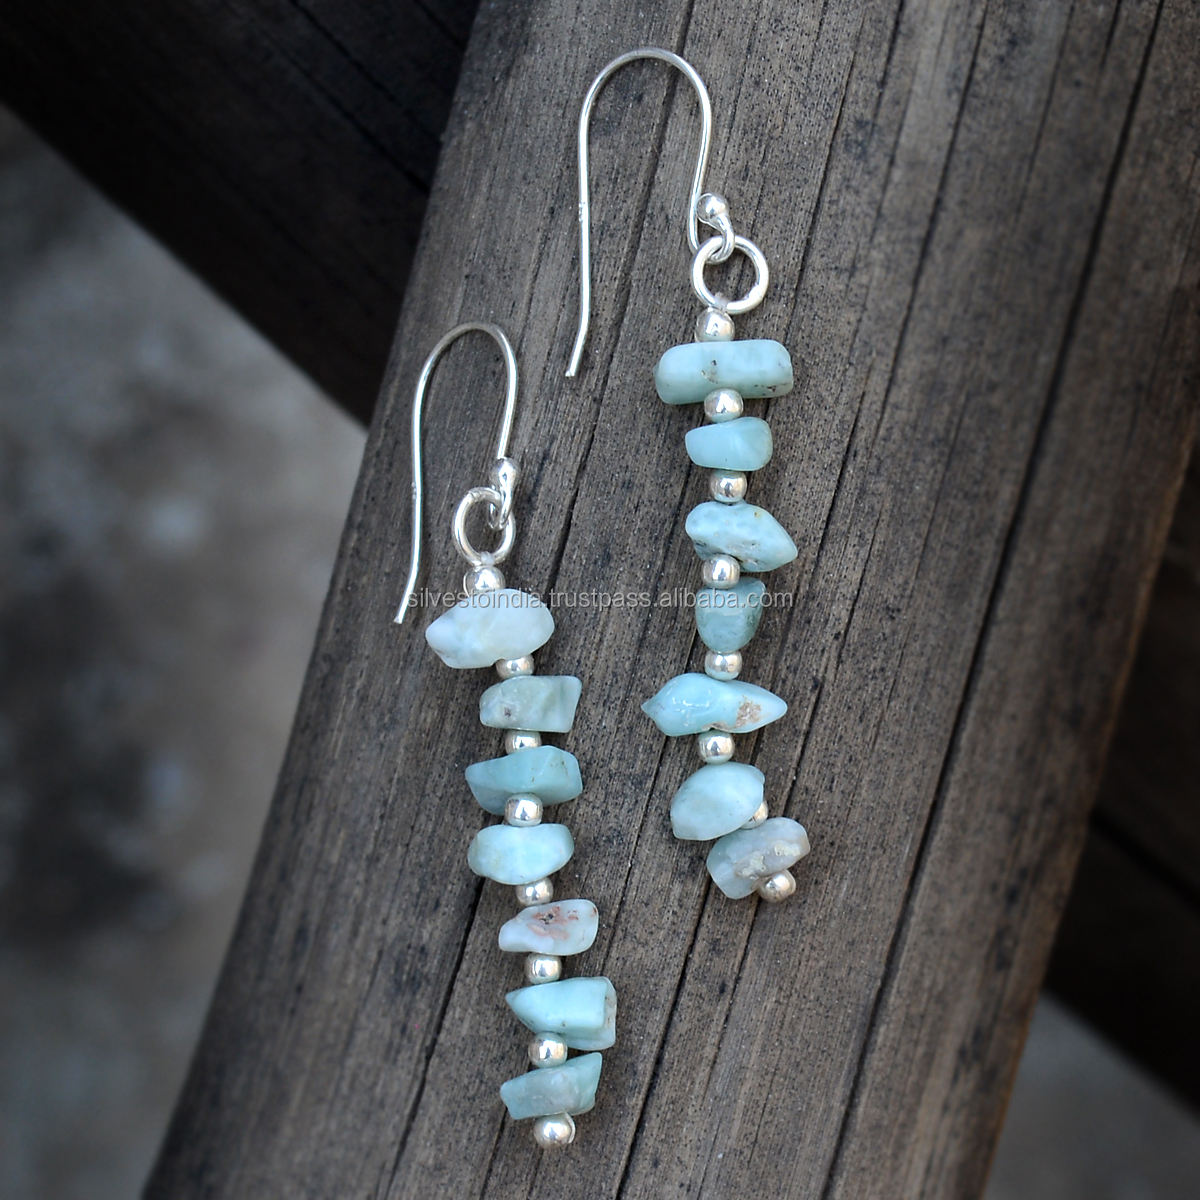 Natural Larimar Uncut Chips Gemstone And Silver Balls Dangle Drop Fashion Earring 925 Sterling Silver Jewelry For Women